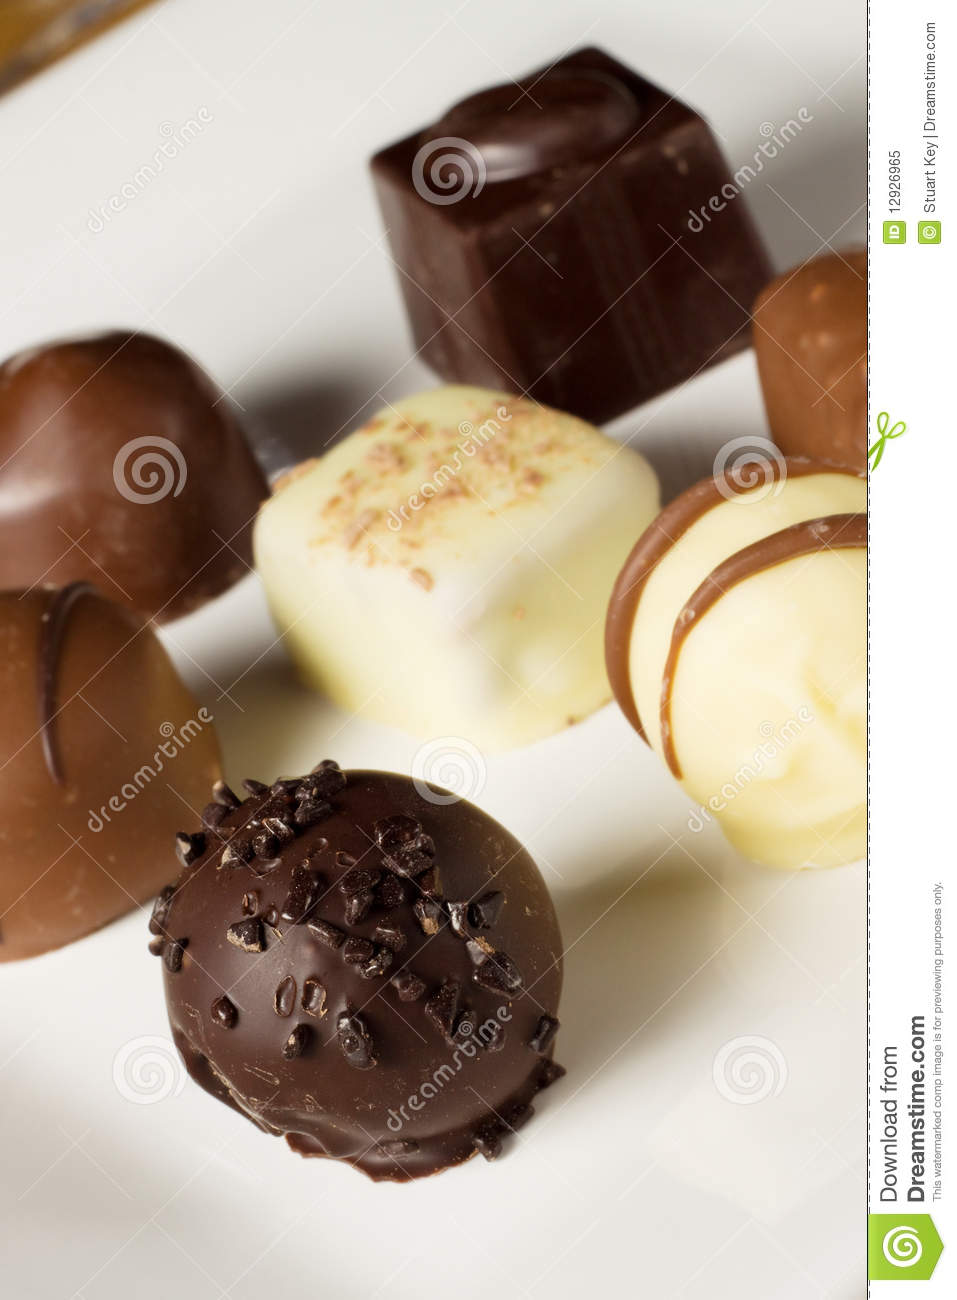 Handmade Chocolates Royalty Free Stock Photo Image 12926965